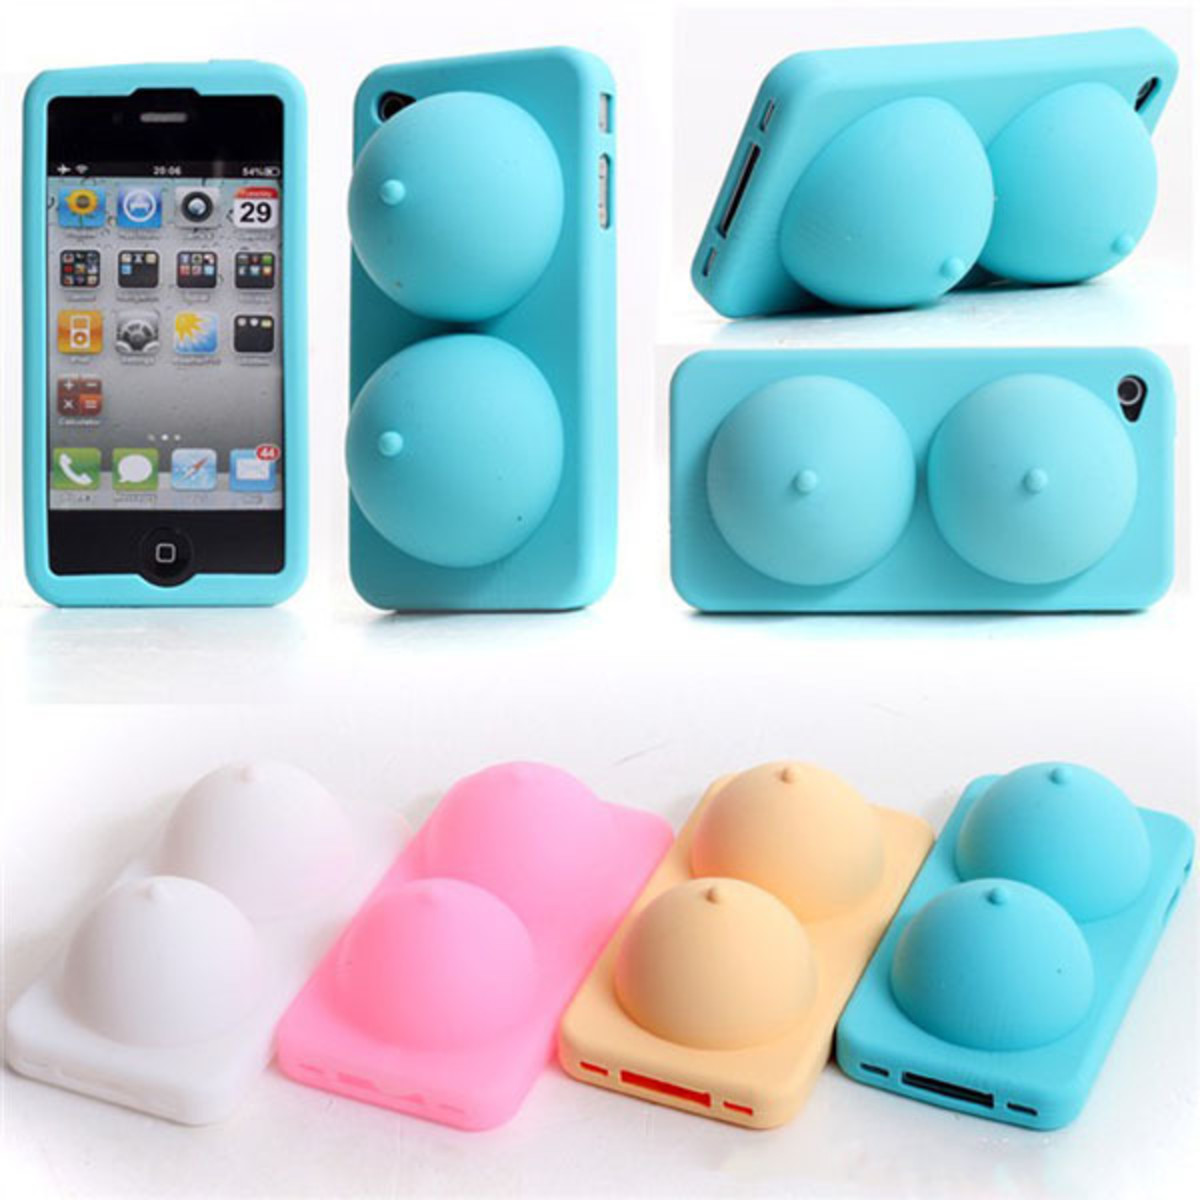 The 3D silicone breasts case for iPhone